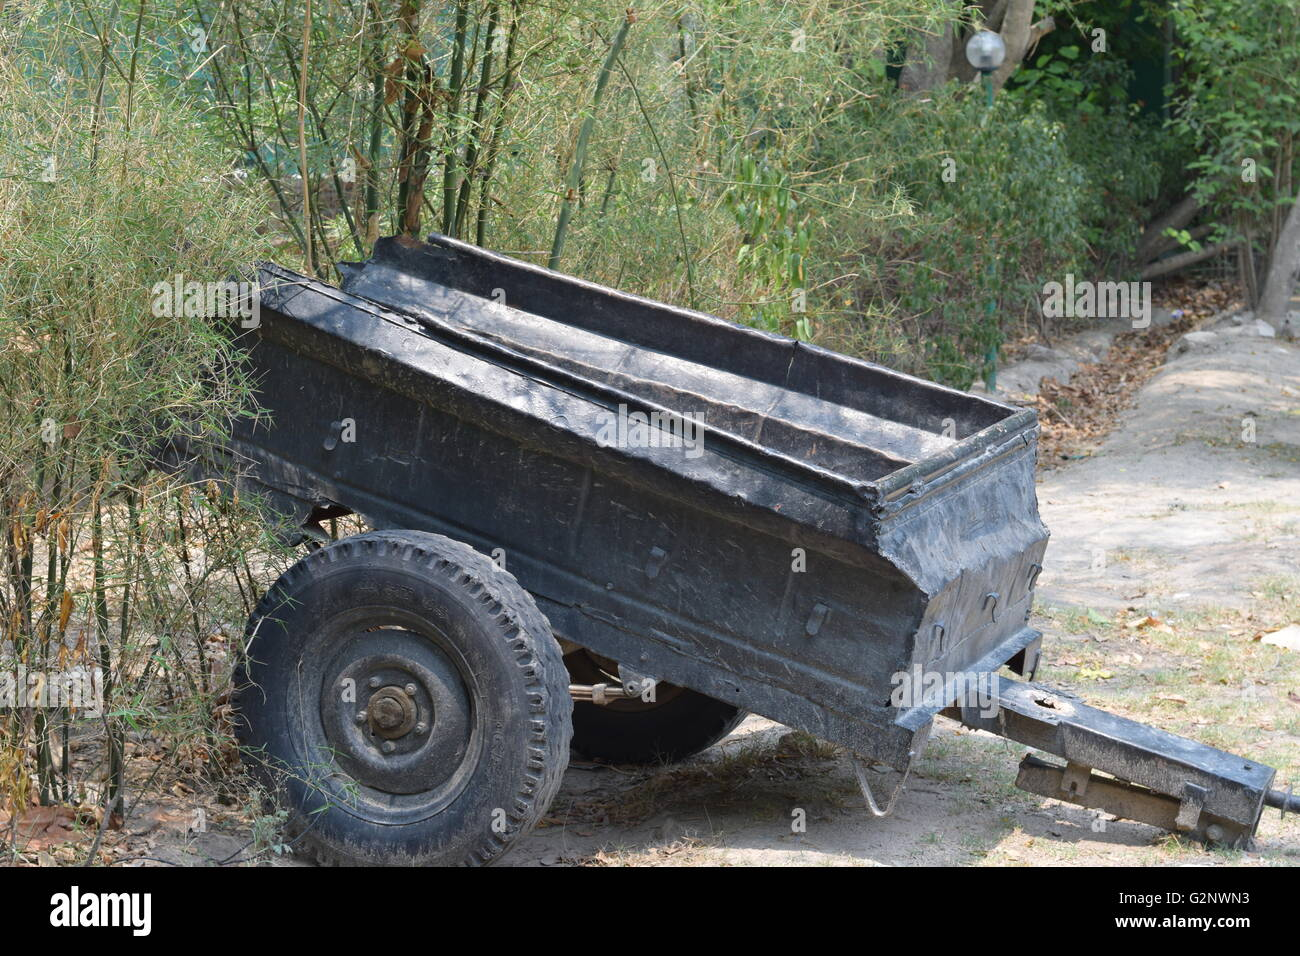 Old vehicle, junk, rusted vehicle, old trolley - Stock Image